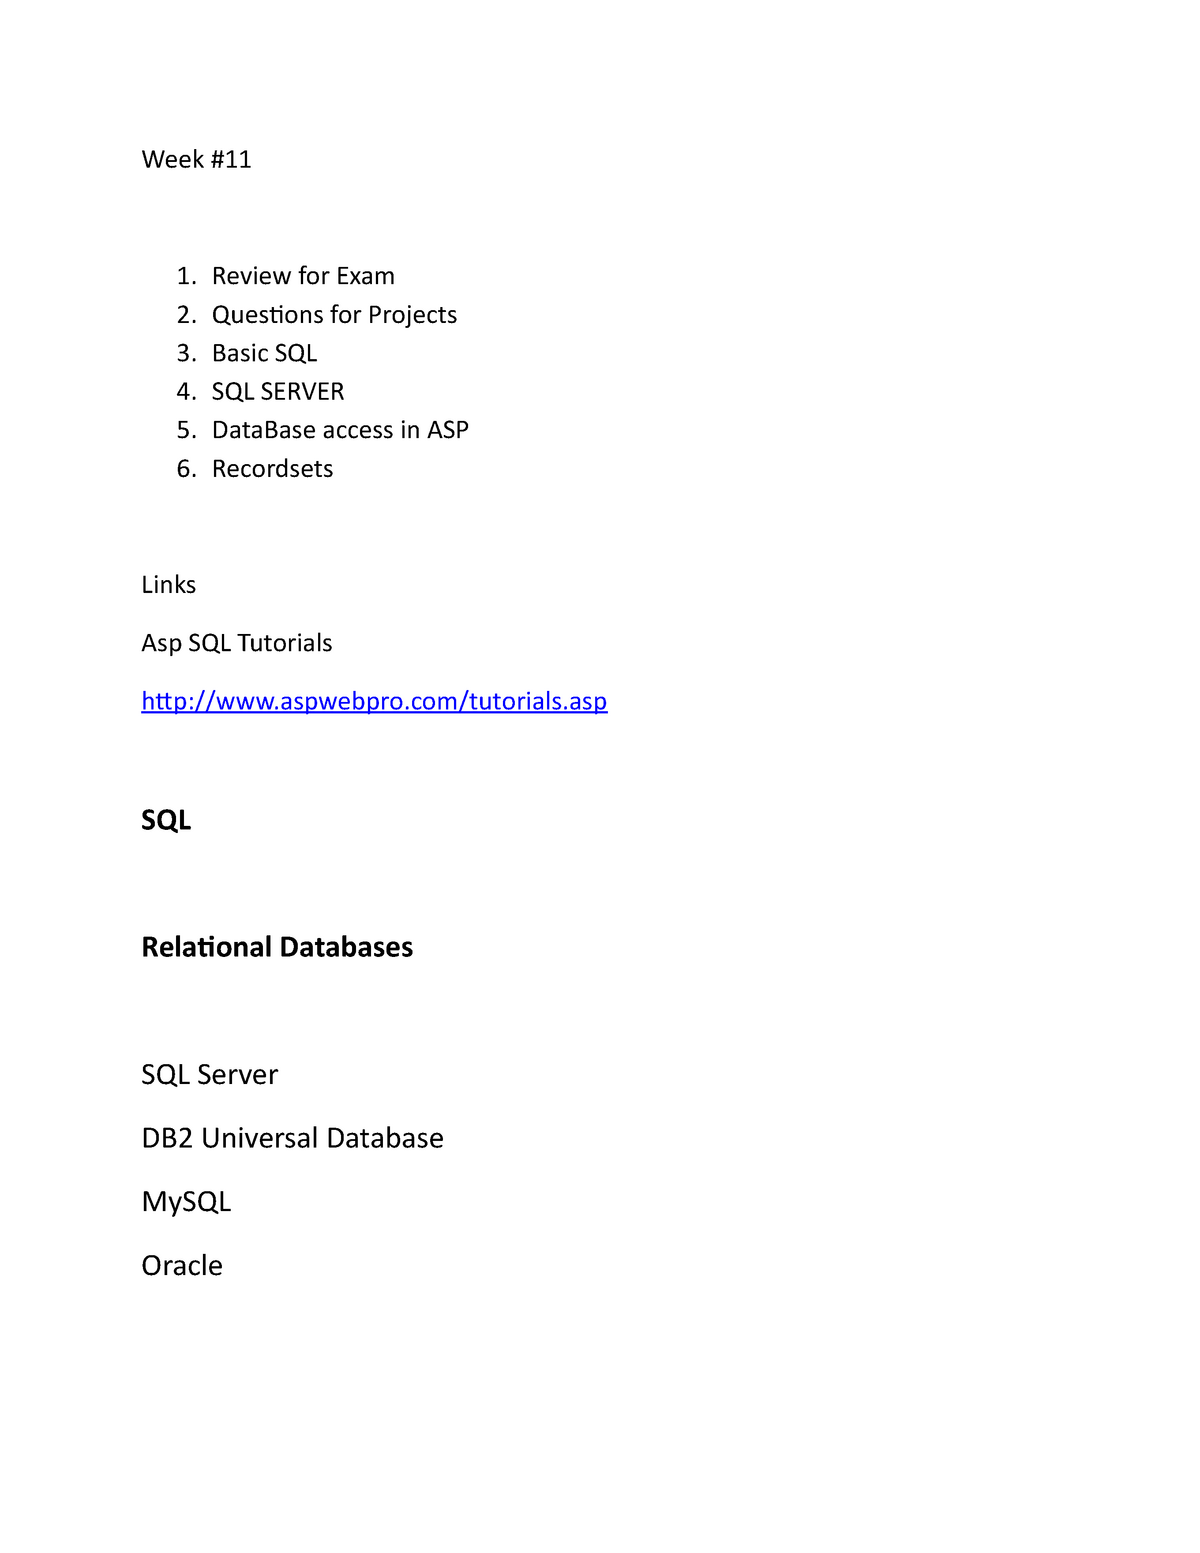 Week 11 - Lecture notes 11 - CIS 4160: Web Applications Development